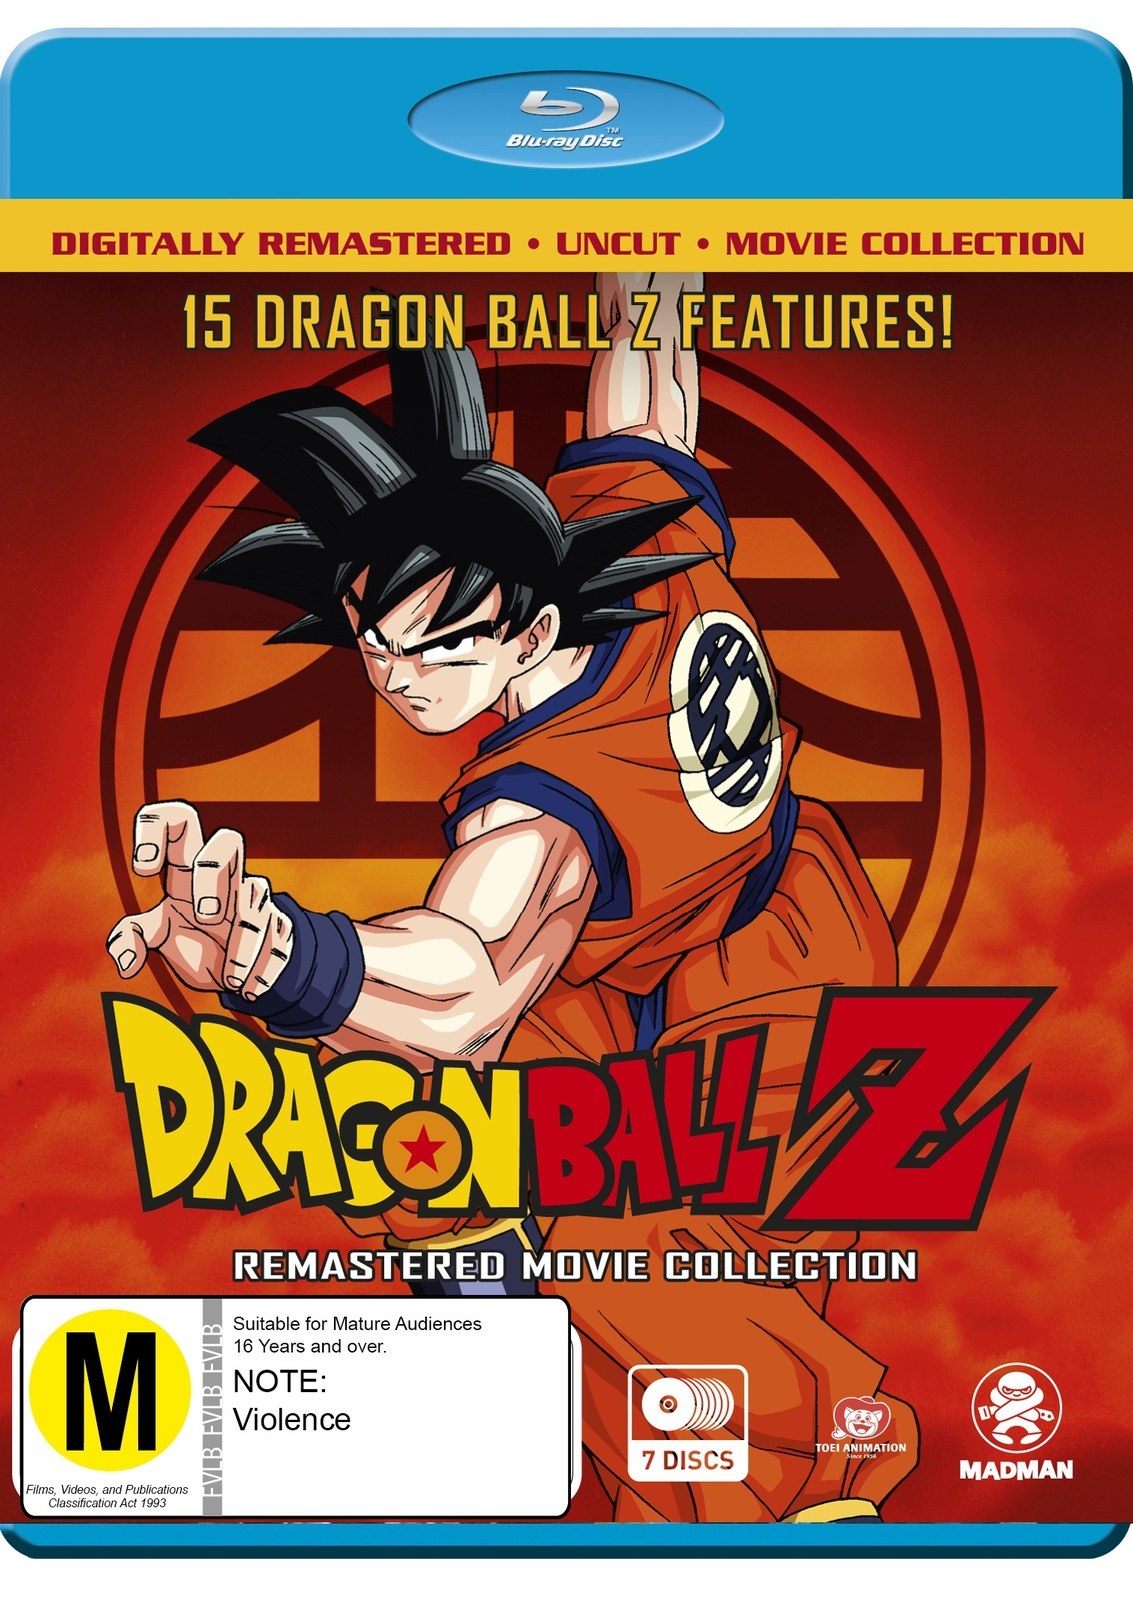 Dragon Ball Z Remastered Movie Collection on Blu-ray image